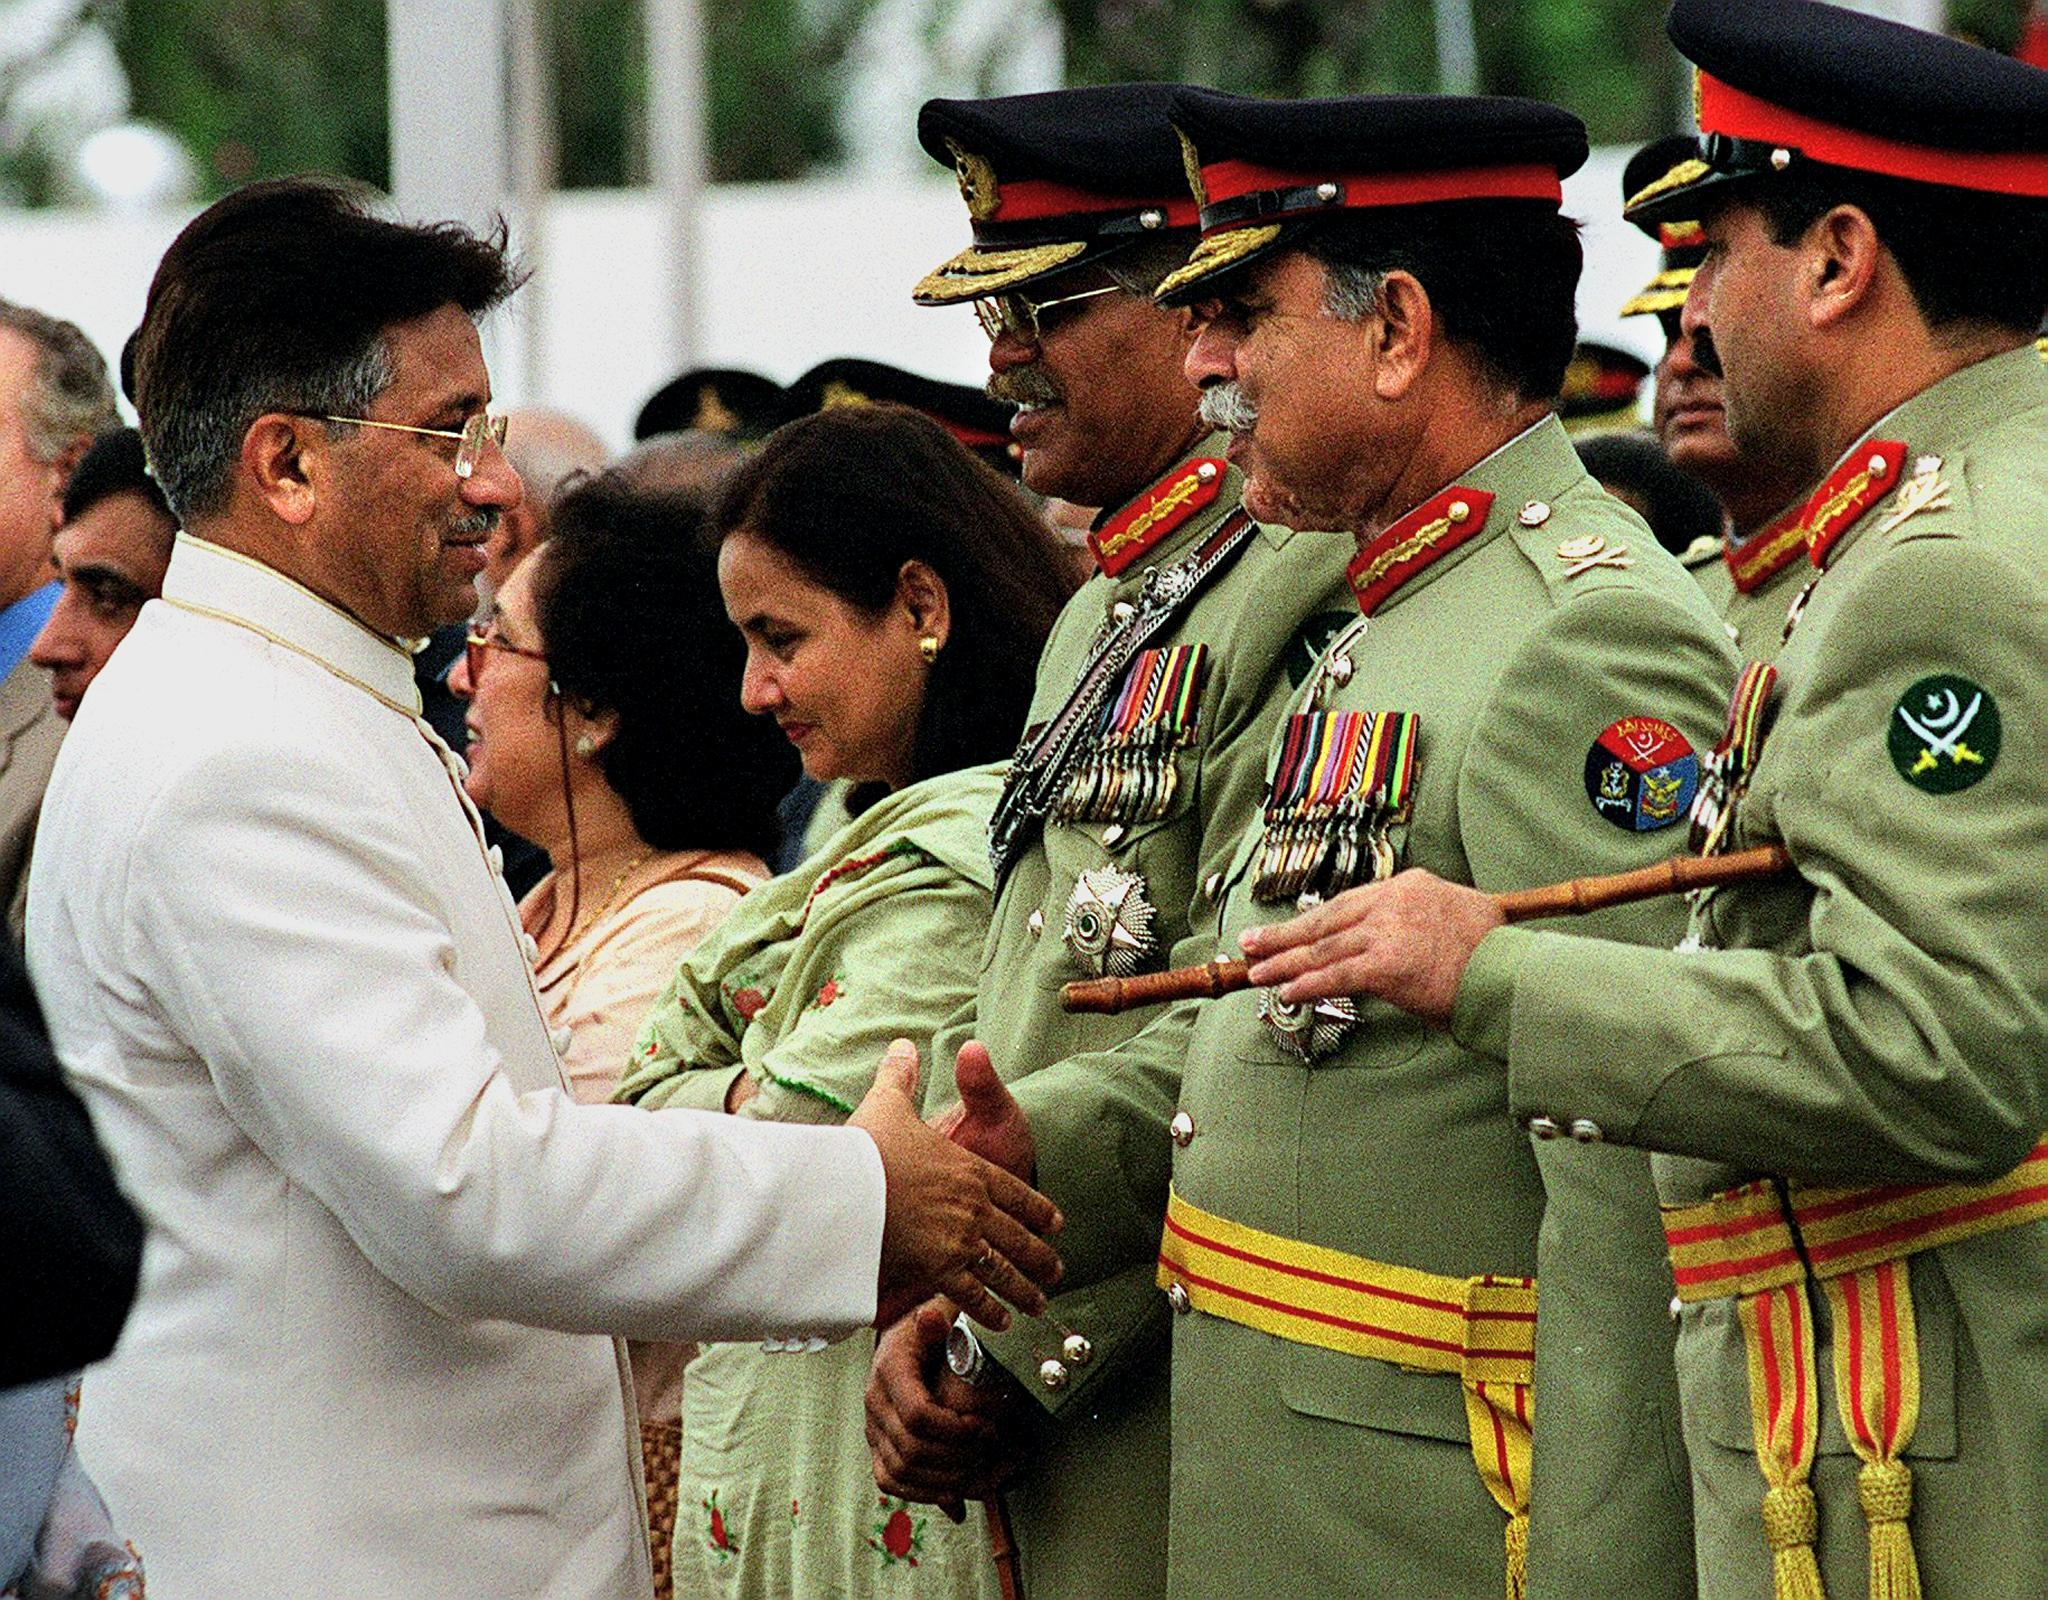 President General Pervez Musharraf (L) shakes hand with top military official, General Mehmood (2nd R), the chief of Inter-Services Intelligence (ISI), after a flag hoisting ceremony to mark the country's 54th Independence Day in Islamabad, August 14, 2001. — AFP